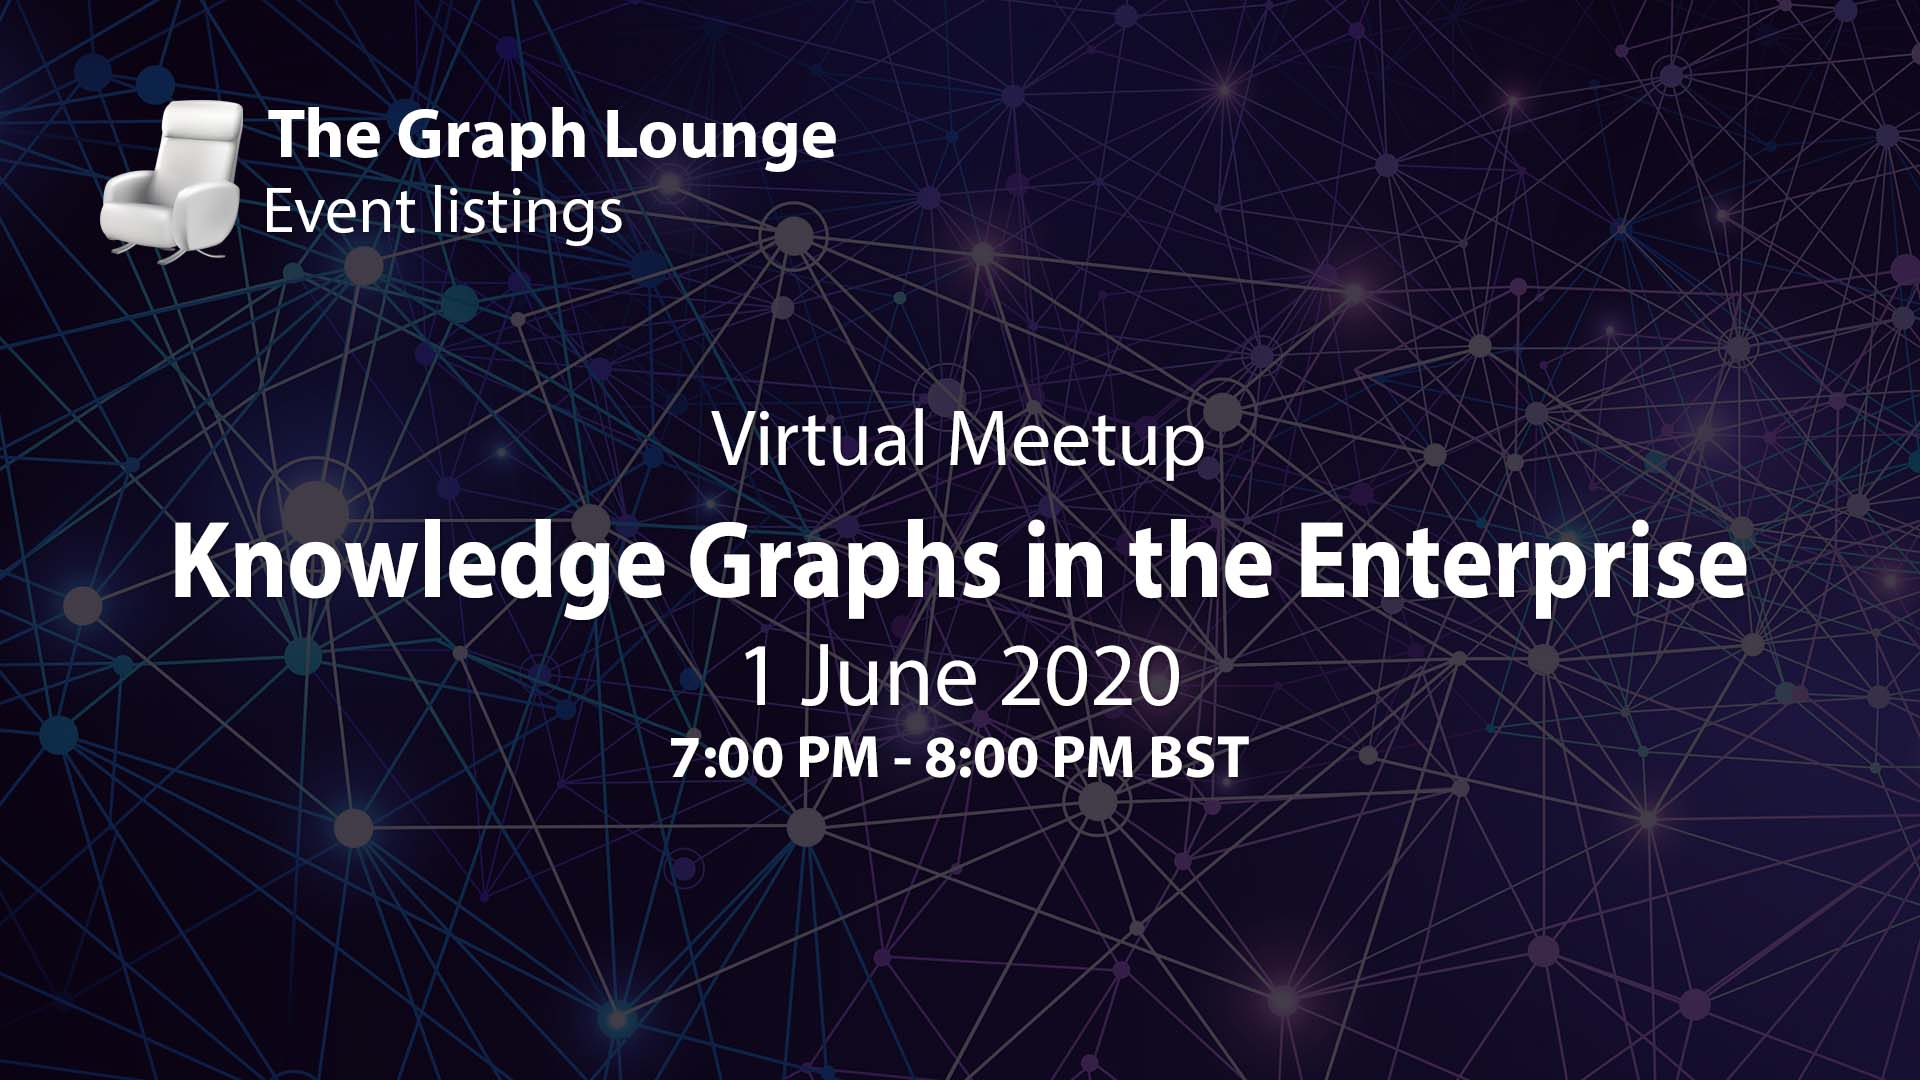 Knowledge Graphs in the Enterprise